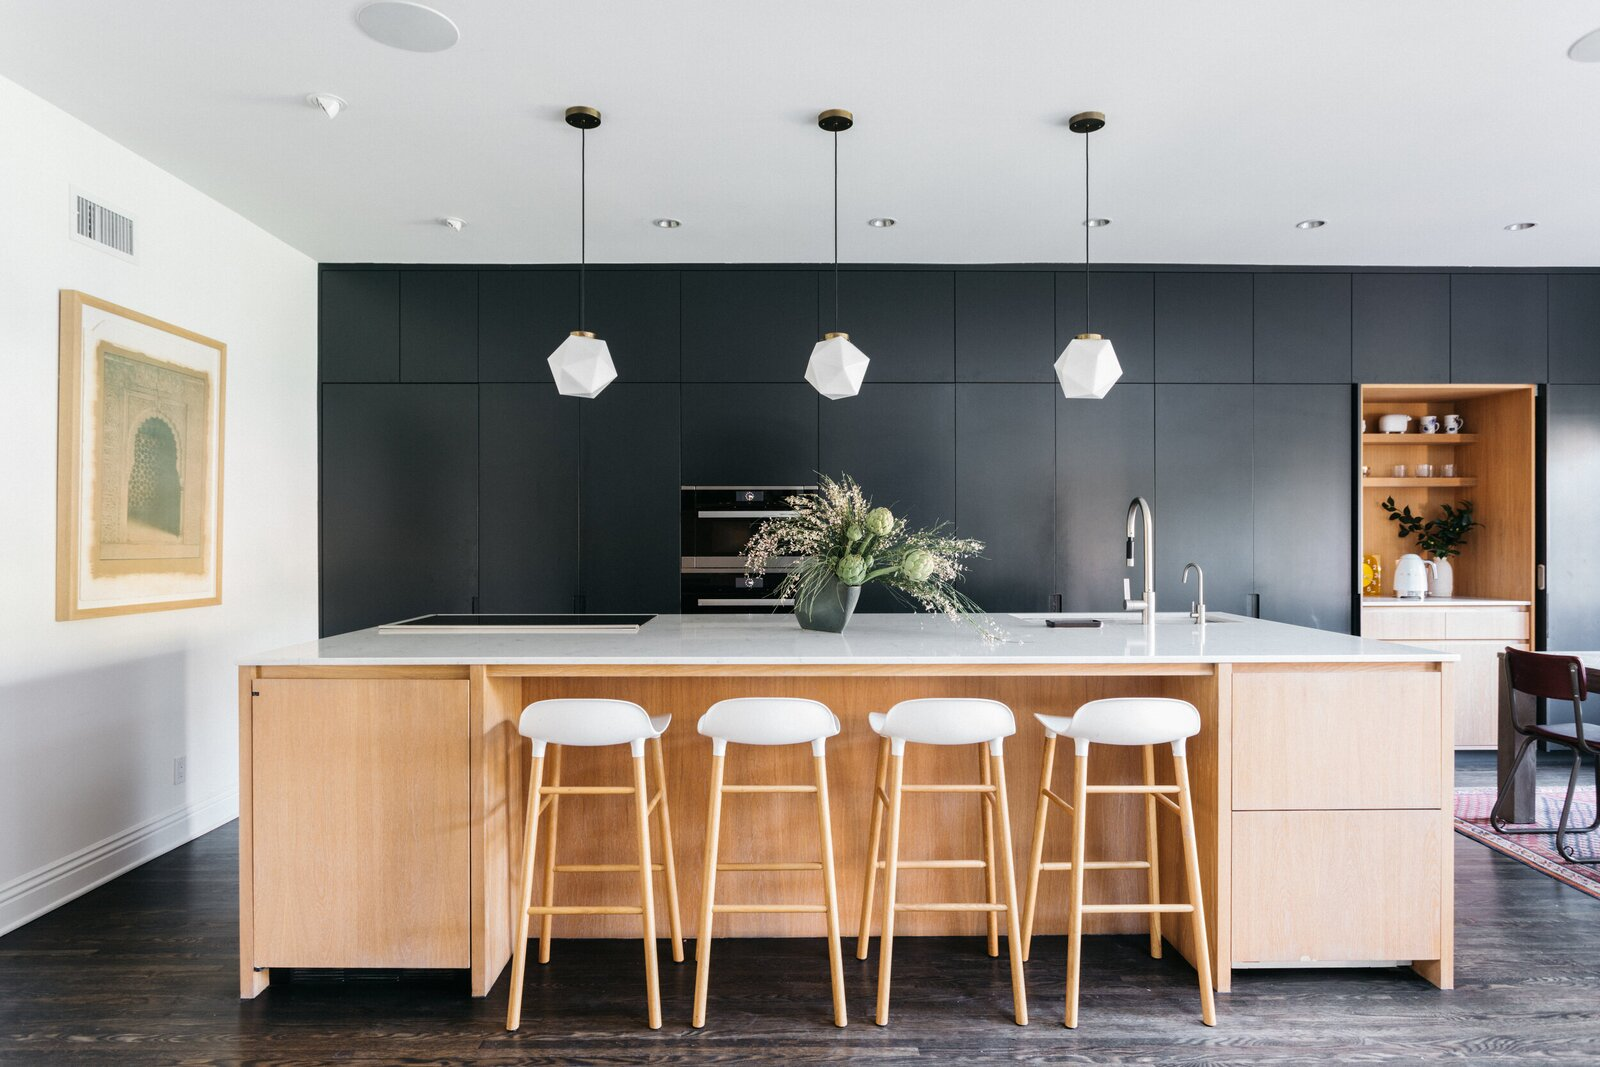 Custom black cabinetry spans the back wall in the kitchen, adding a dramatic punch of color against the geometric, white pendants hanging over the large, central island.  Photo 4 of 15 in A Posh Tudor-Style Home in L.A. Seeks $7M